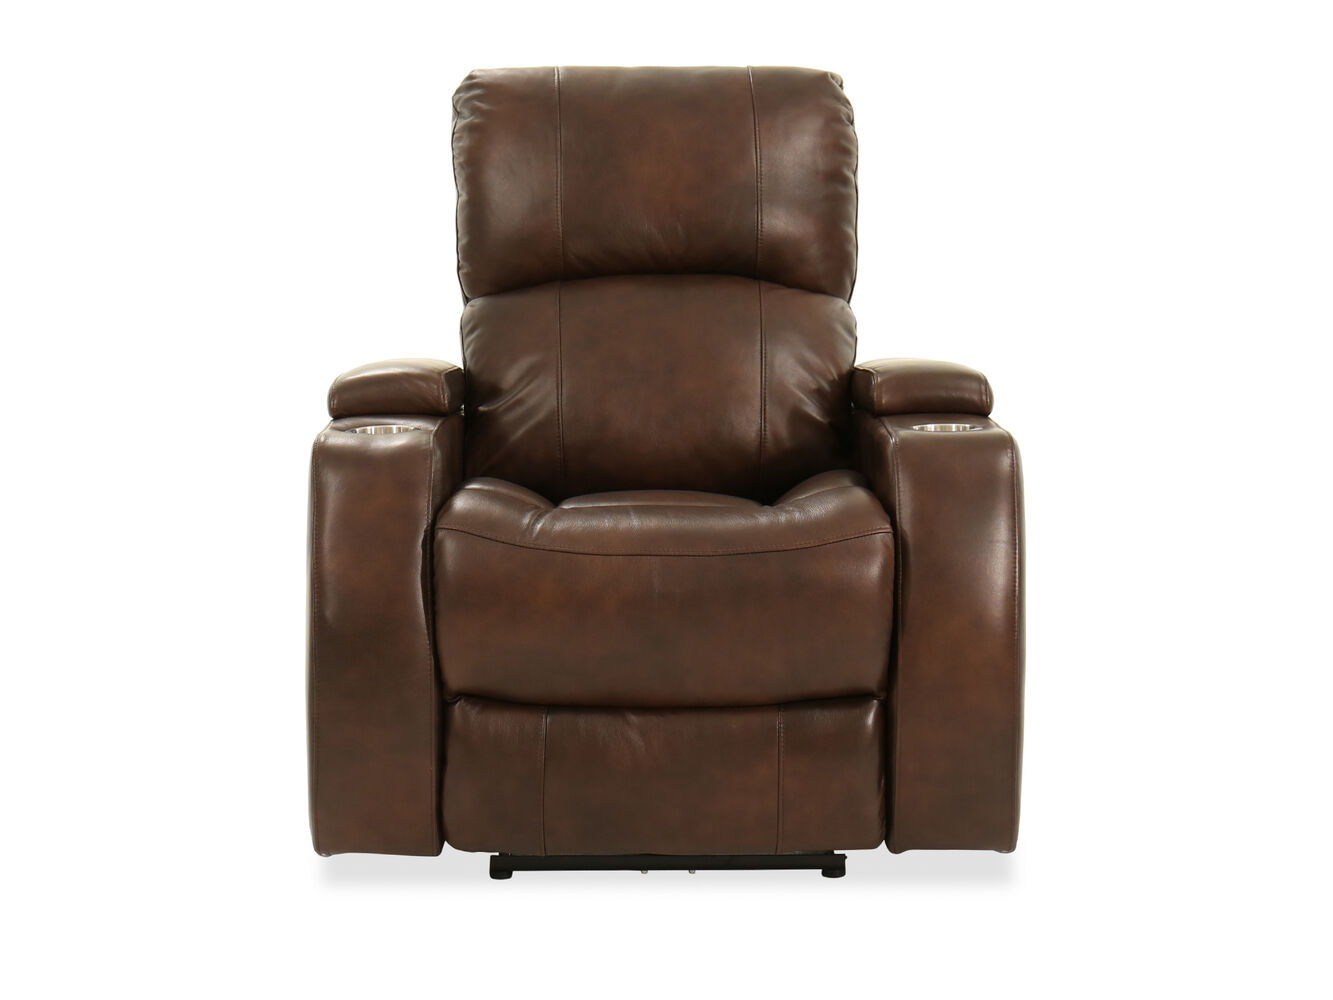 Two Cup Holder Leather 37 Power Recliner In Brown